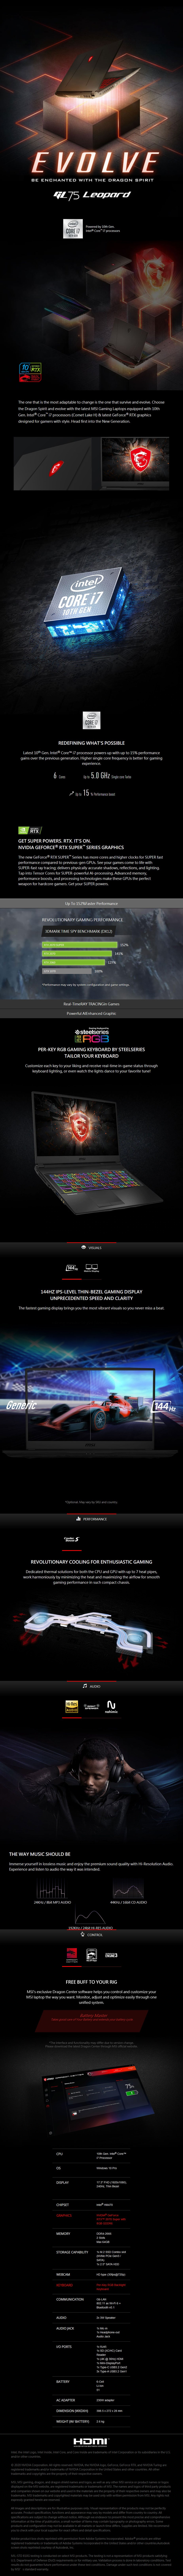 """MSI GL75 Leopard 10SFSK 17.3"""" 240HZ Gaming Laptop i7 16GB 512GB RTX2070S W10P - Overview 1"""